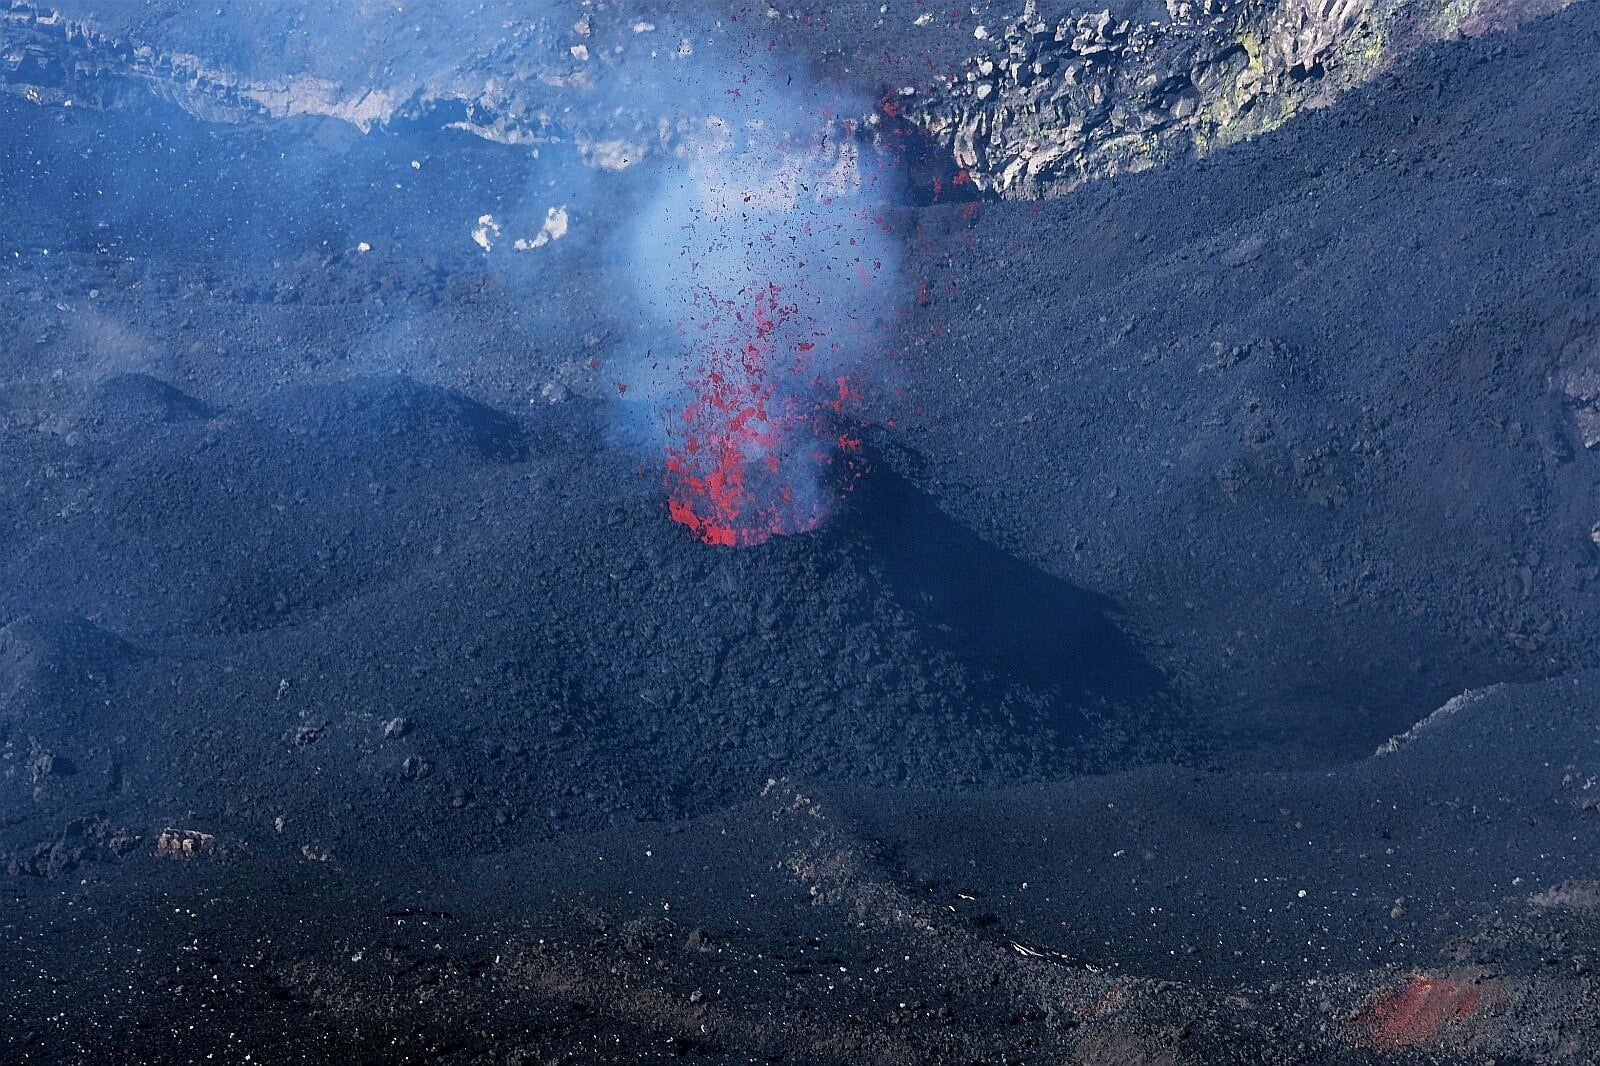 Etna - 05.02.2021 - Strombolian activity at one of the mouths inside the Bocca Nuova - photo F. Ciancitto via INGV OE